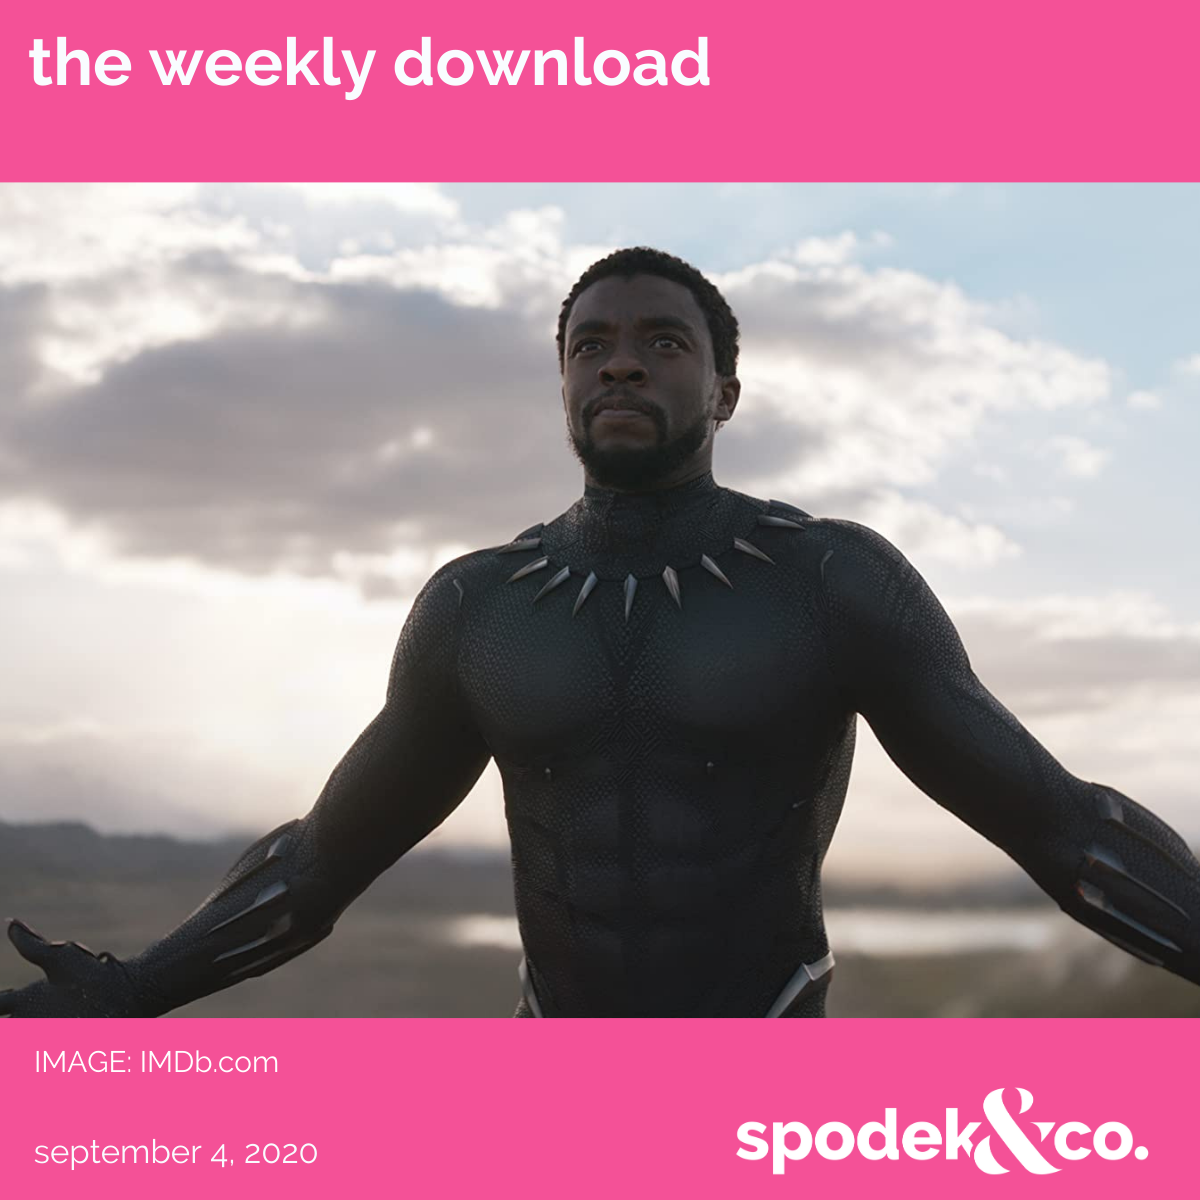 The Weekly Download – September 4, 2020